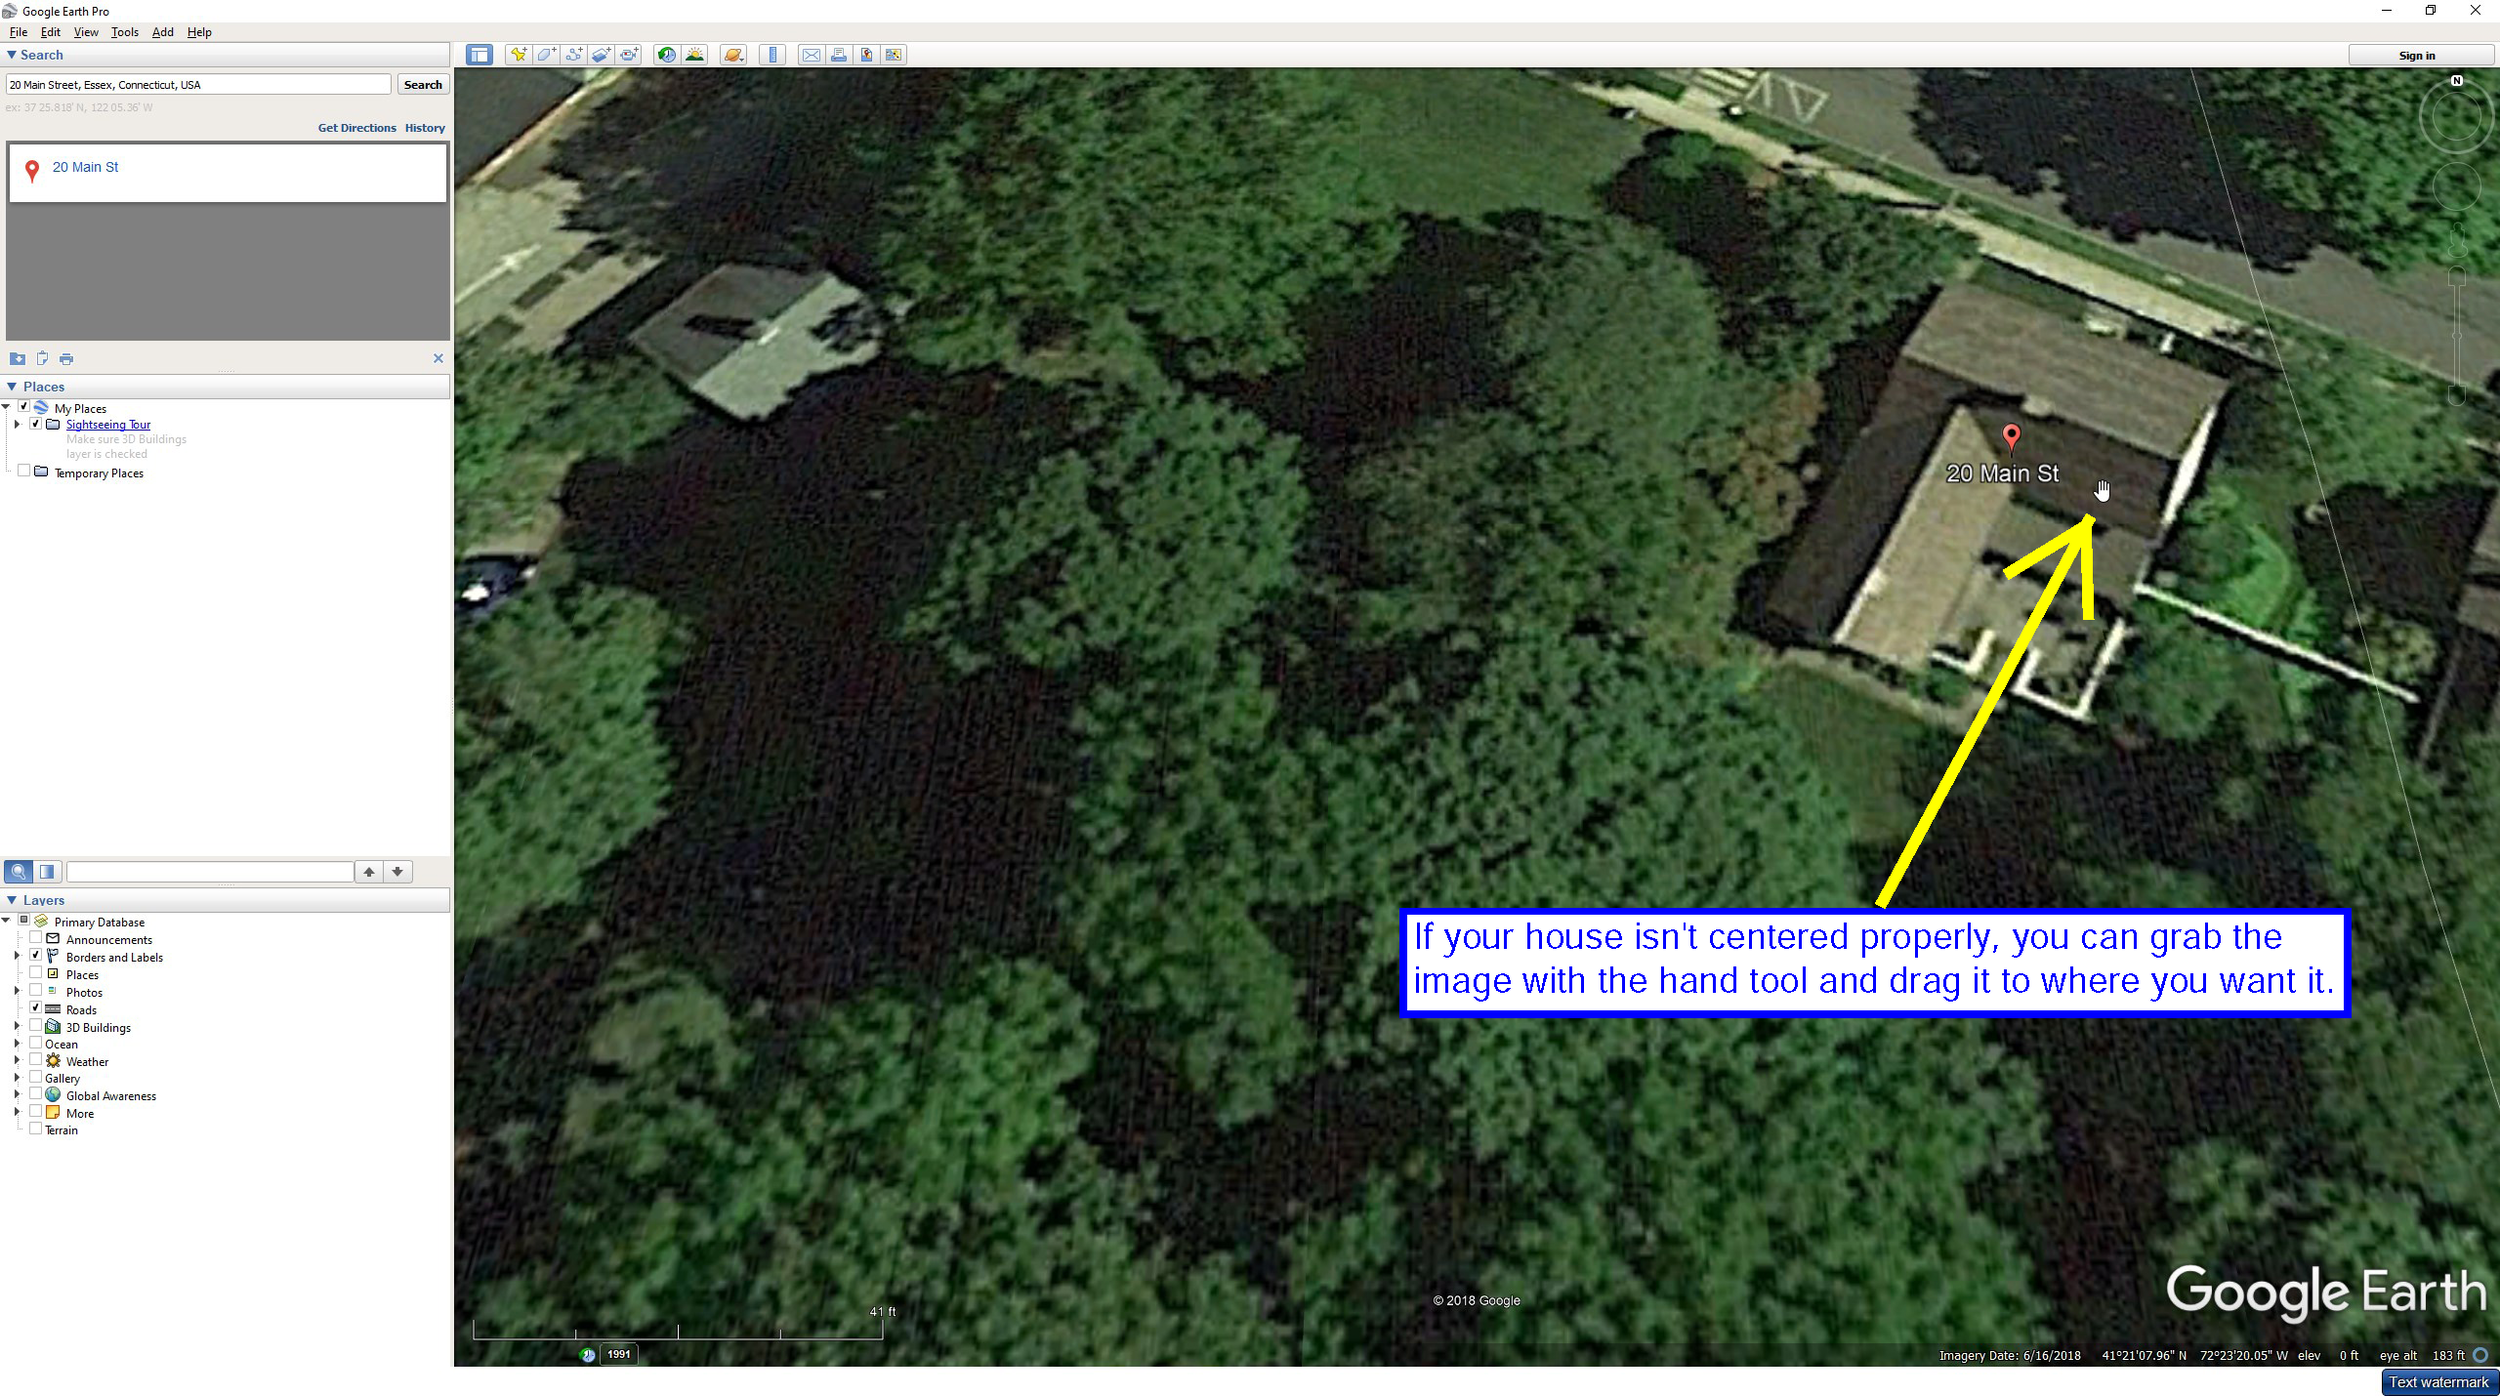 RoofOnline.com - How to Find Your House in Google Earth 9.png